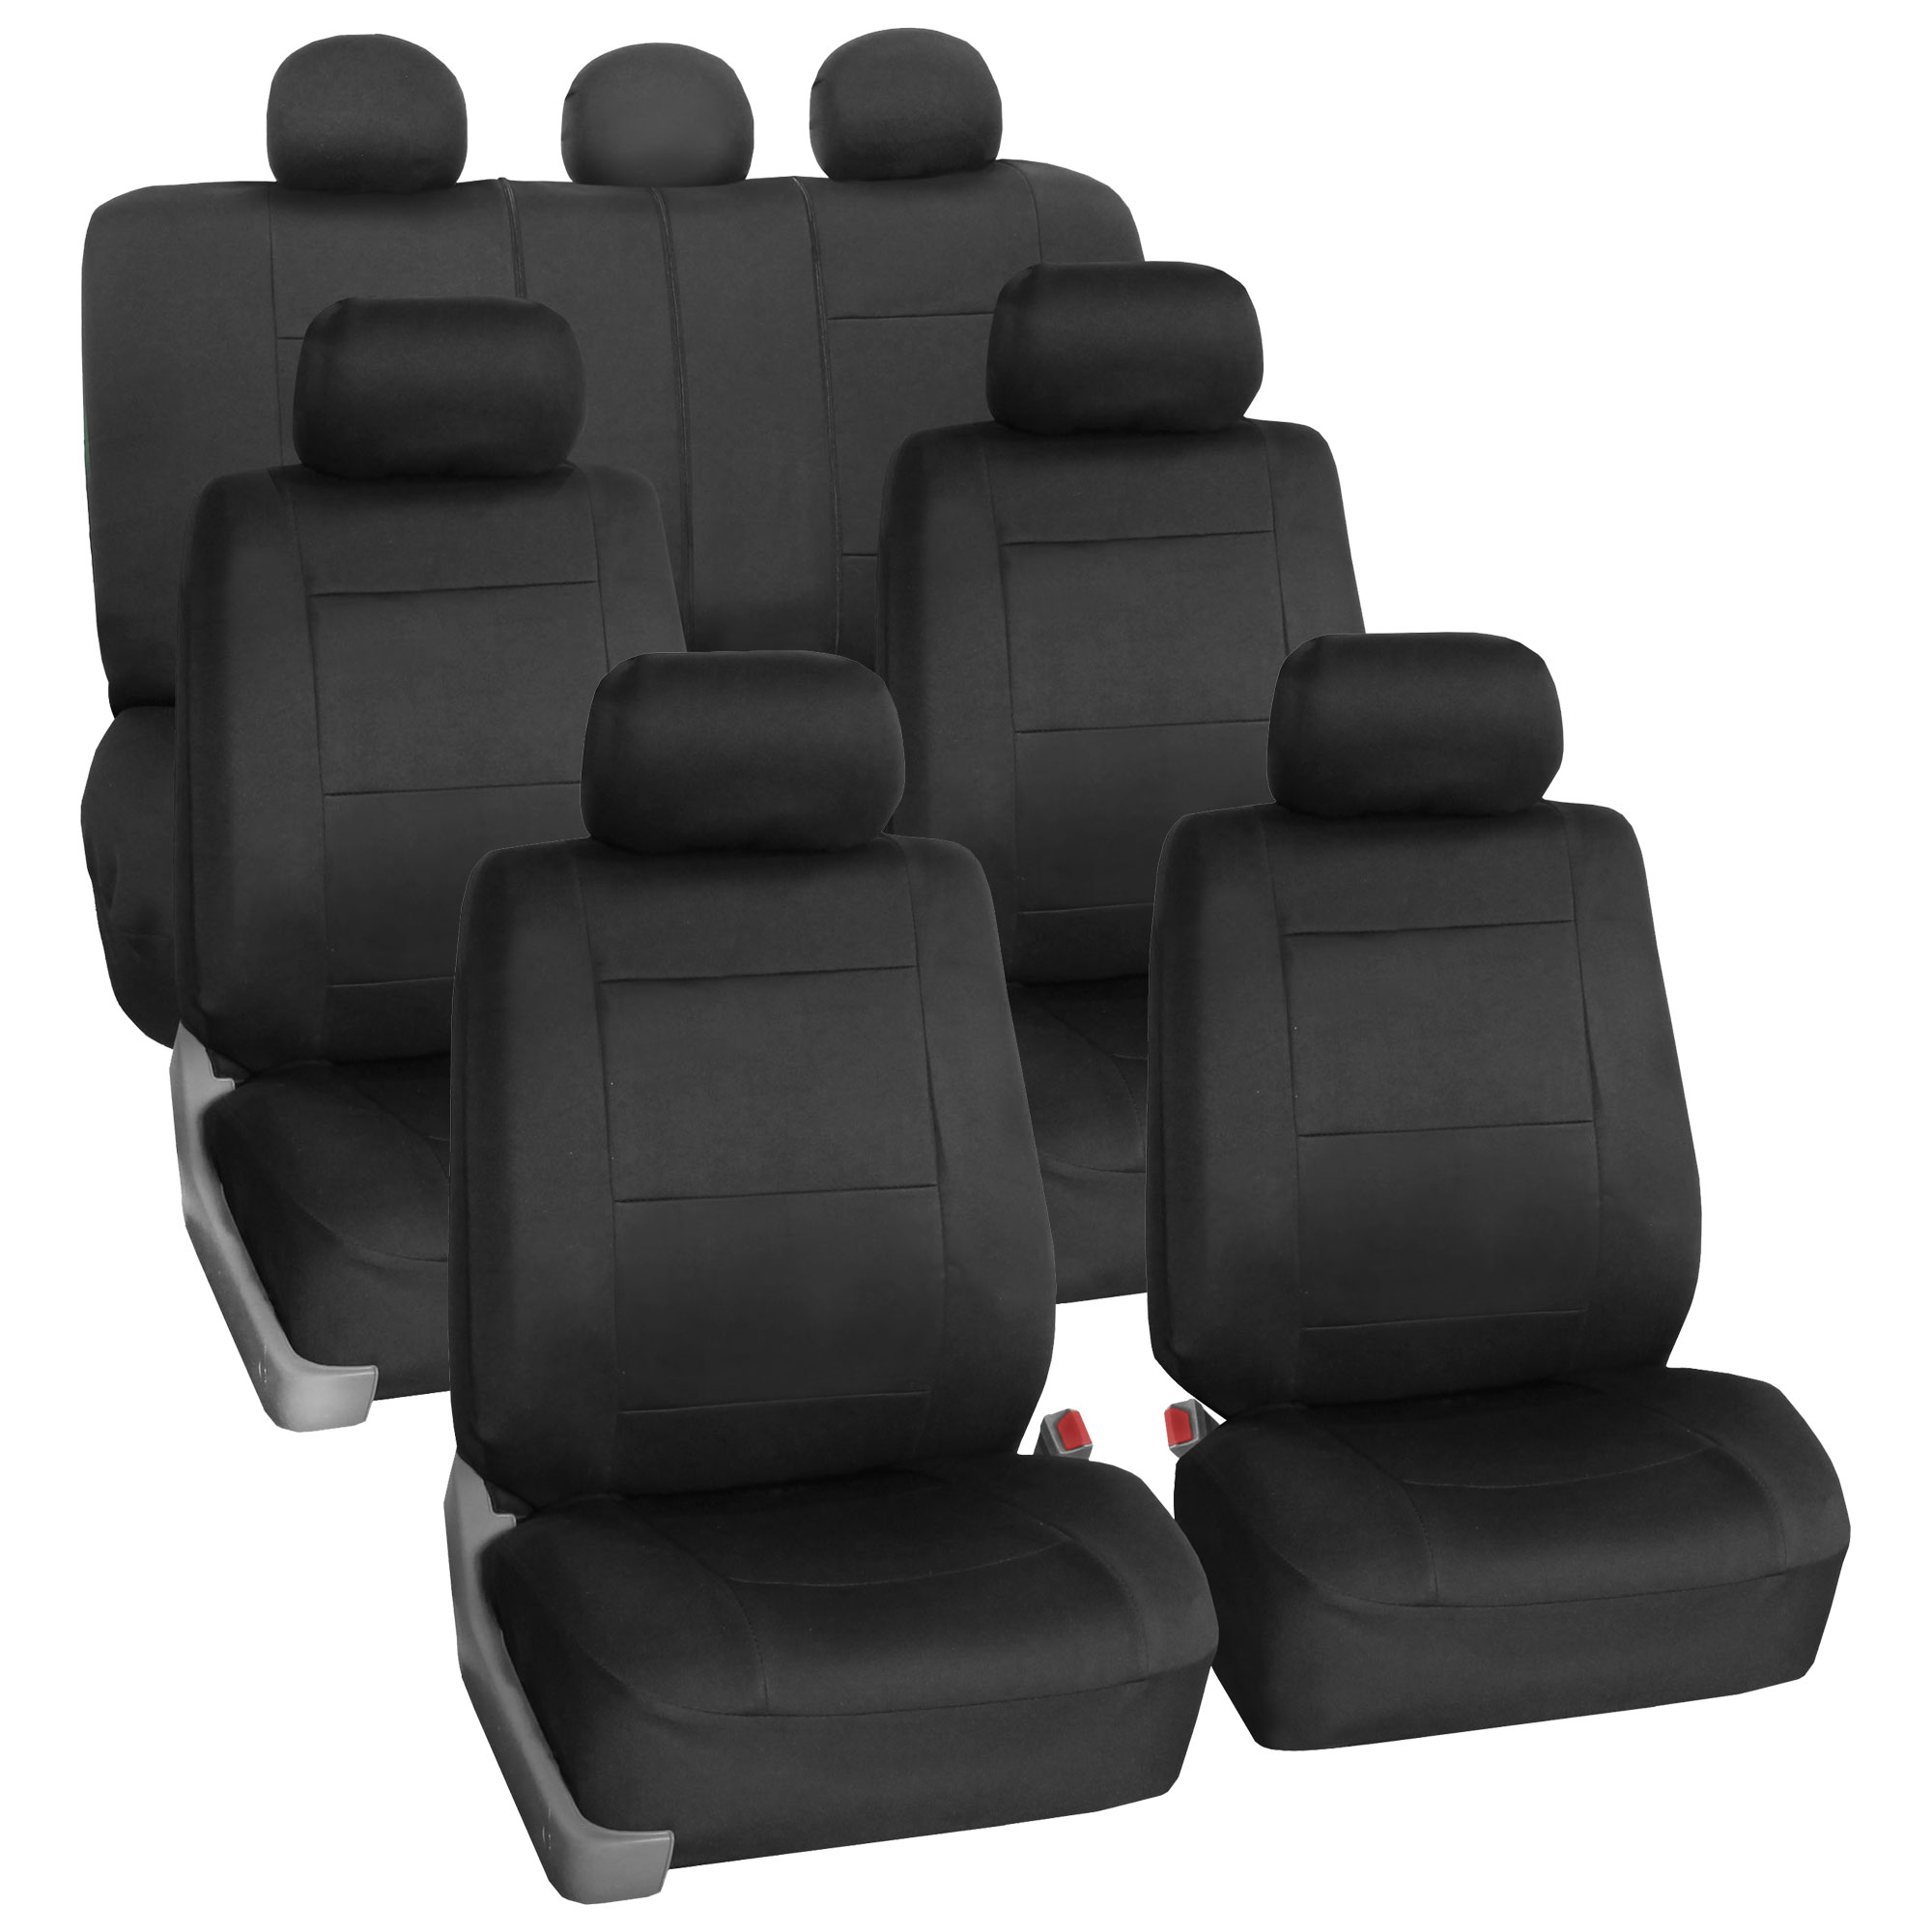 Neoprene 3 Row Car Seat Covers For SUV VAN TRUCK, Airbag Compatible Split Bench 7 Seaters, Black